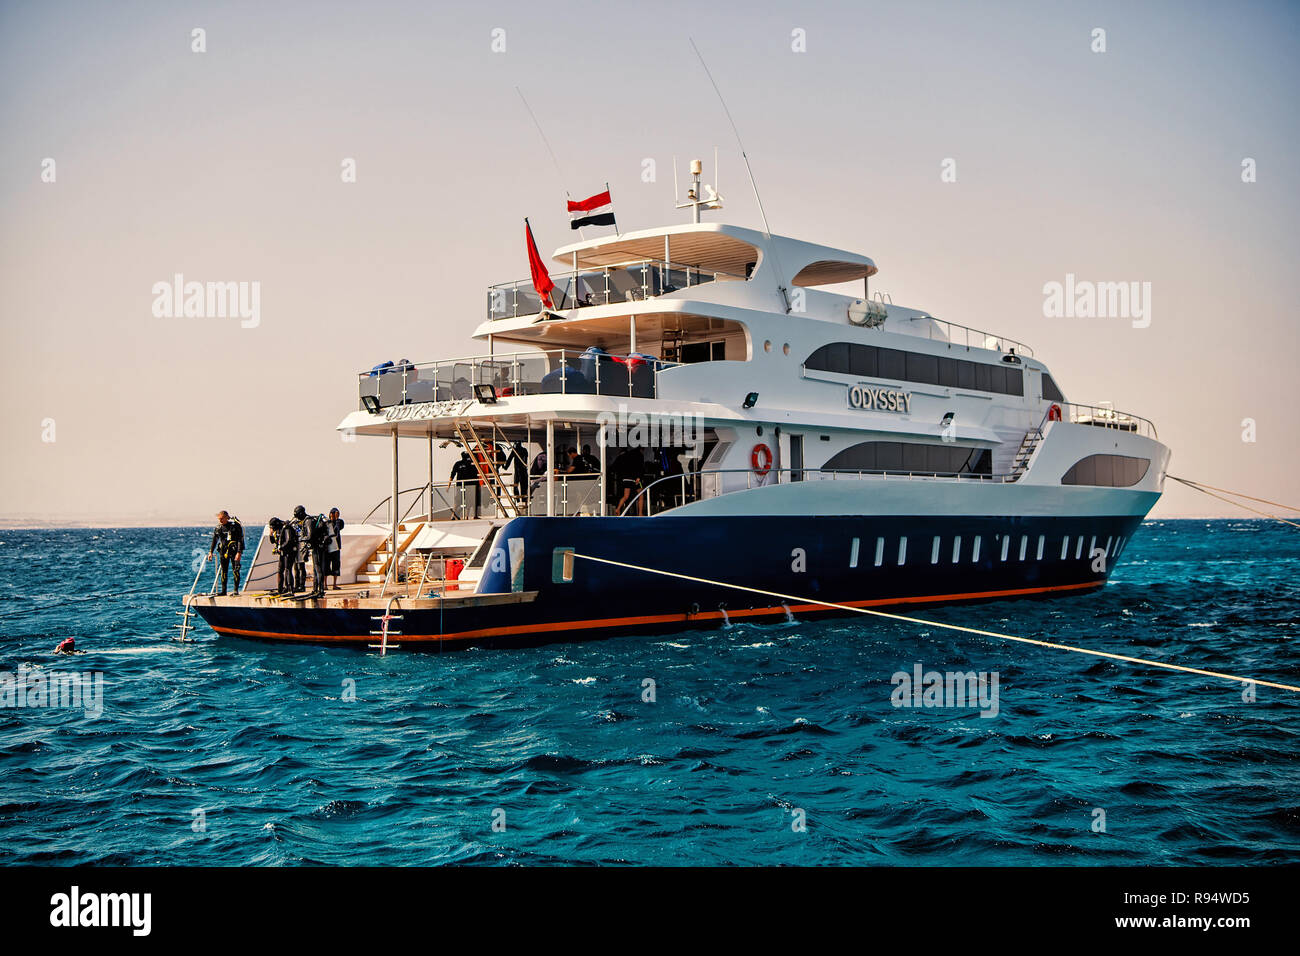 Hurghada, Egypt - February 24, 2017: white ship or yacht, modern motor boat and group of people, scuba divers, in wetsuits, snorkels in blue sea on summer day on clear sky. Snorkeling activity Stock Photo